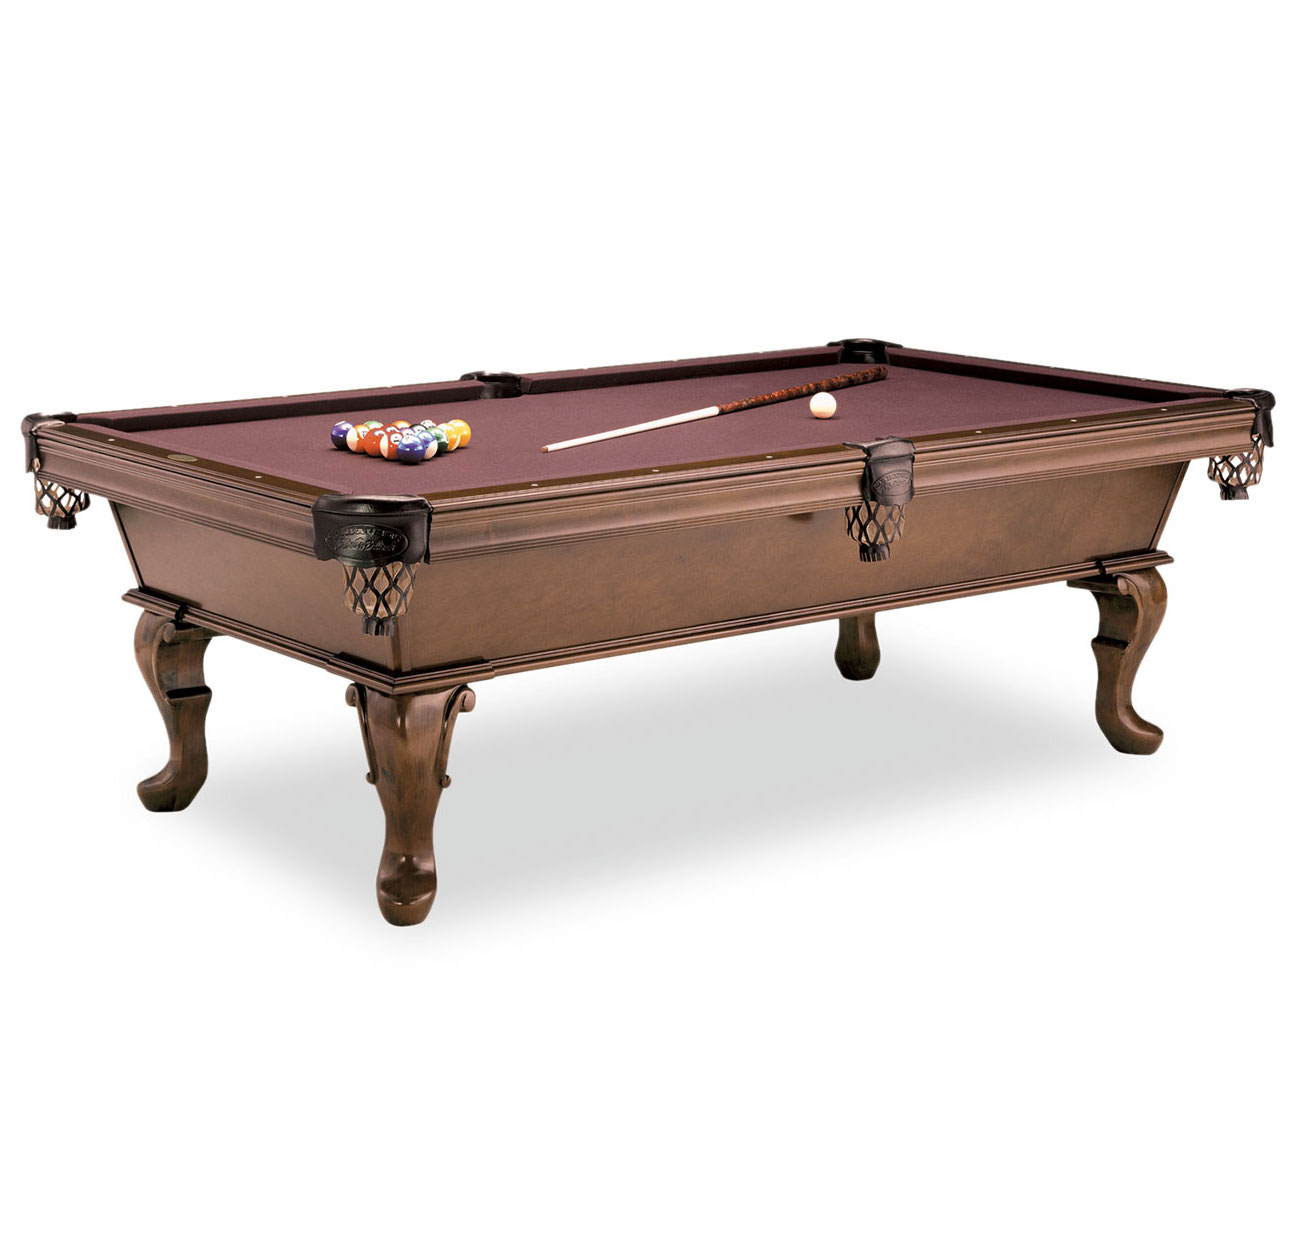 Olhausen Virginian Pool TableShop Olhausen Pool Tables - Buy my pool table